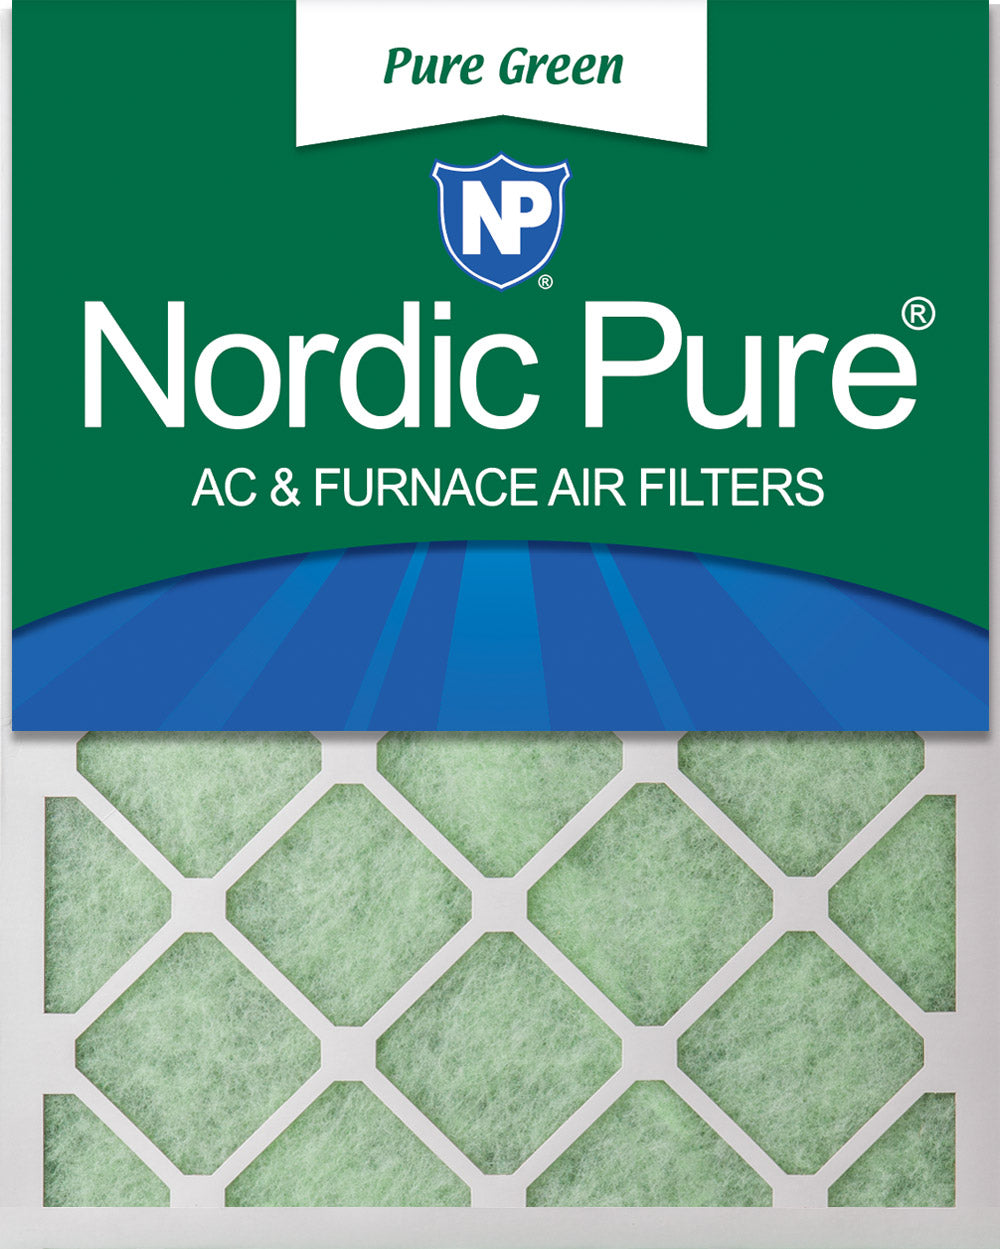 16x25x1 Pure Green Eco-Friendly AC Furnace Air Filters 6 Pack